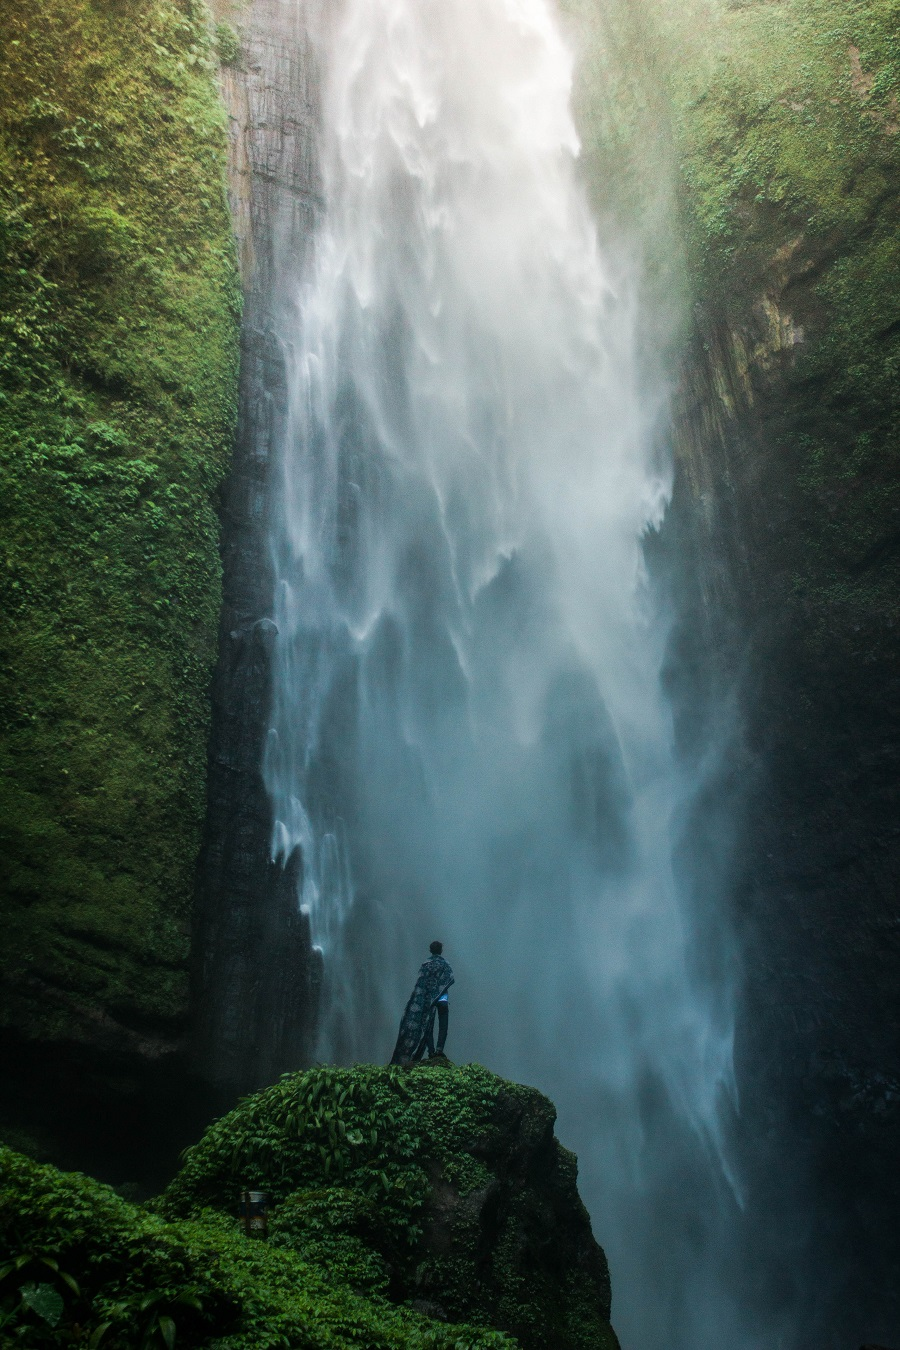 This image managed to simultaneously add scale and take it away. The human element that was included shows that the waterfall is huge, but by excluding part of it we don't know just how huge it could be.